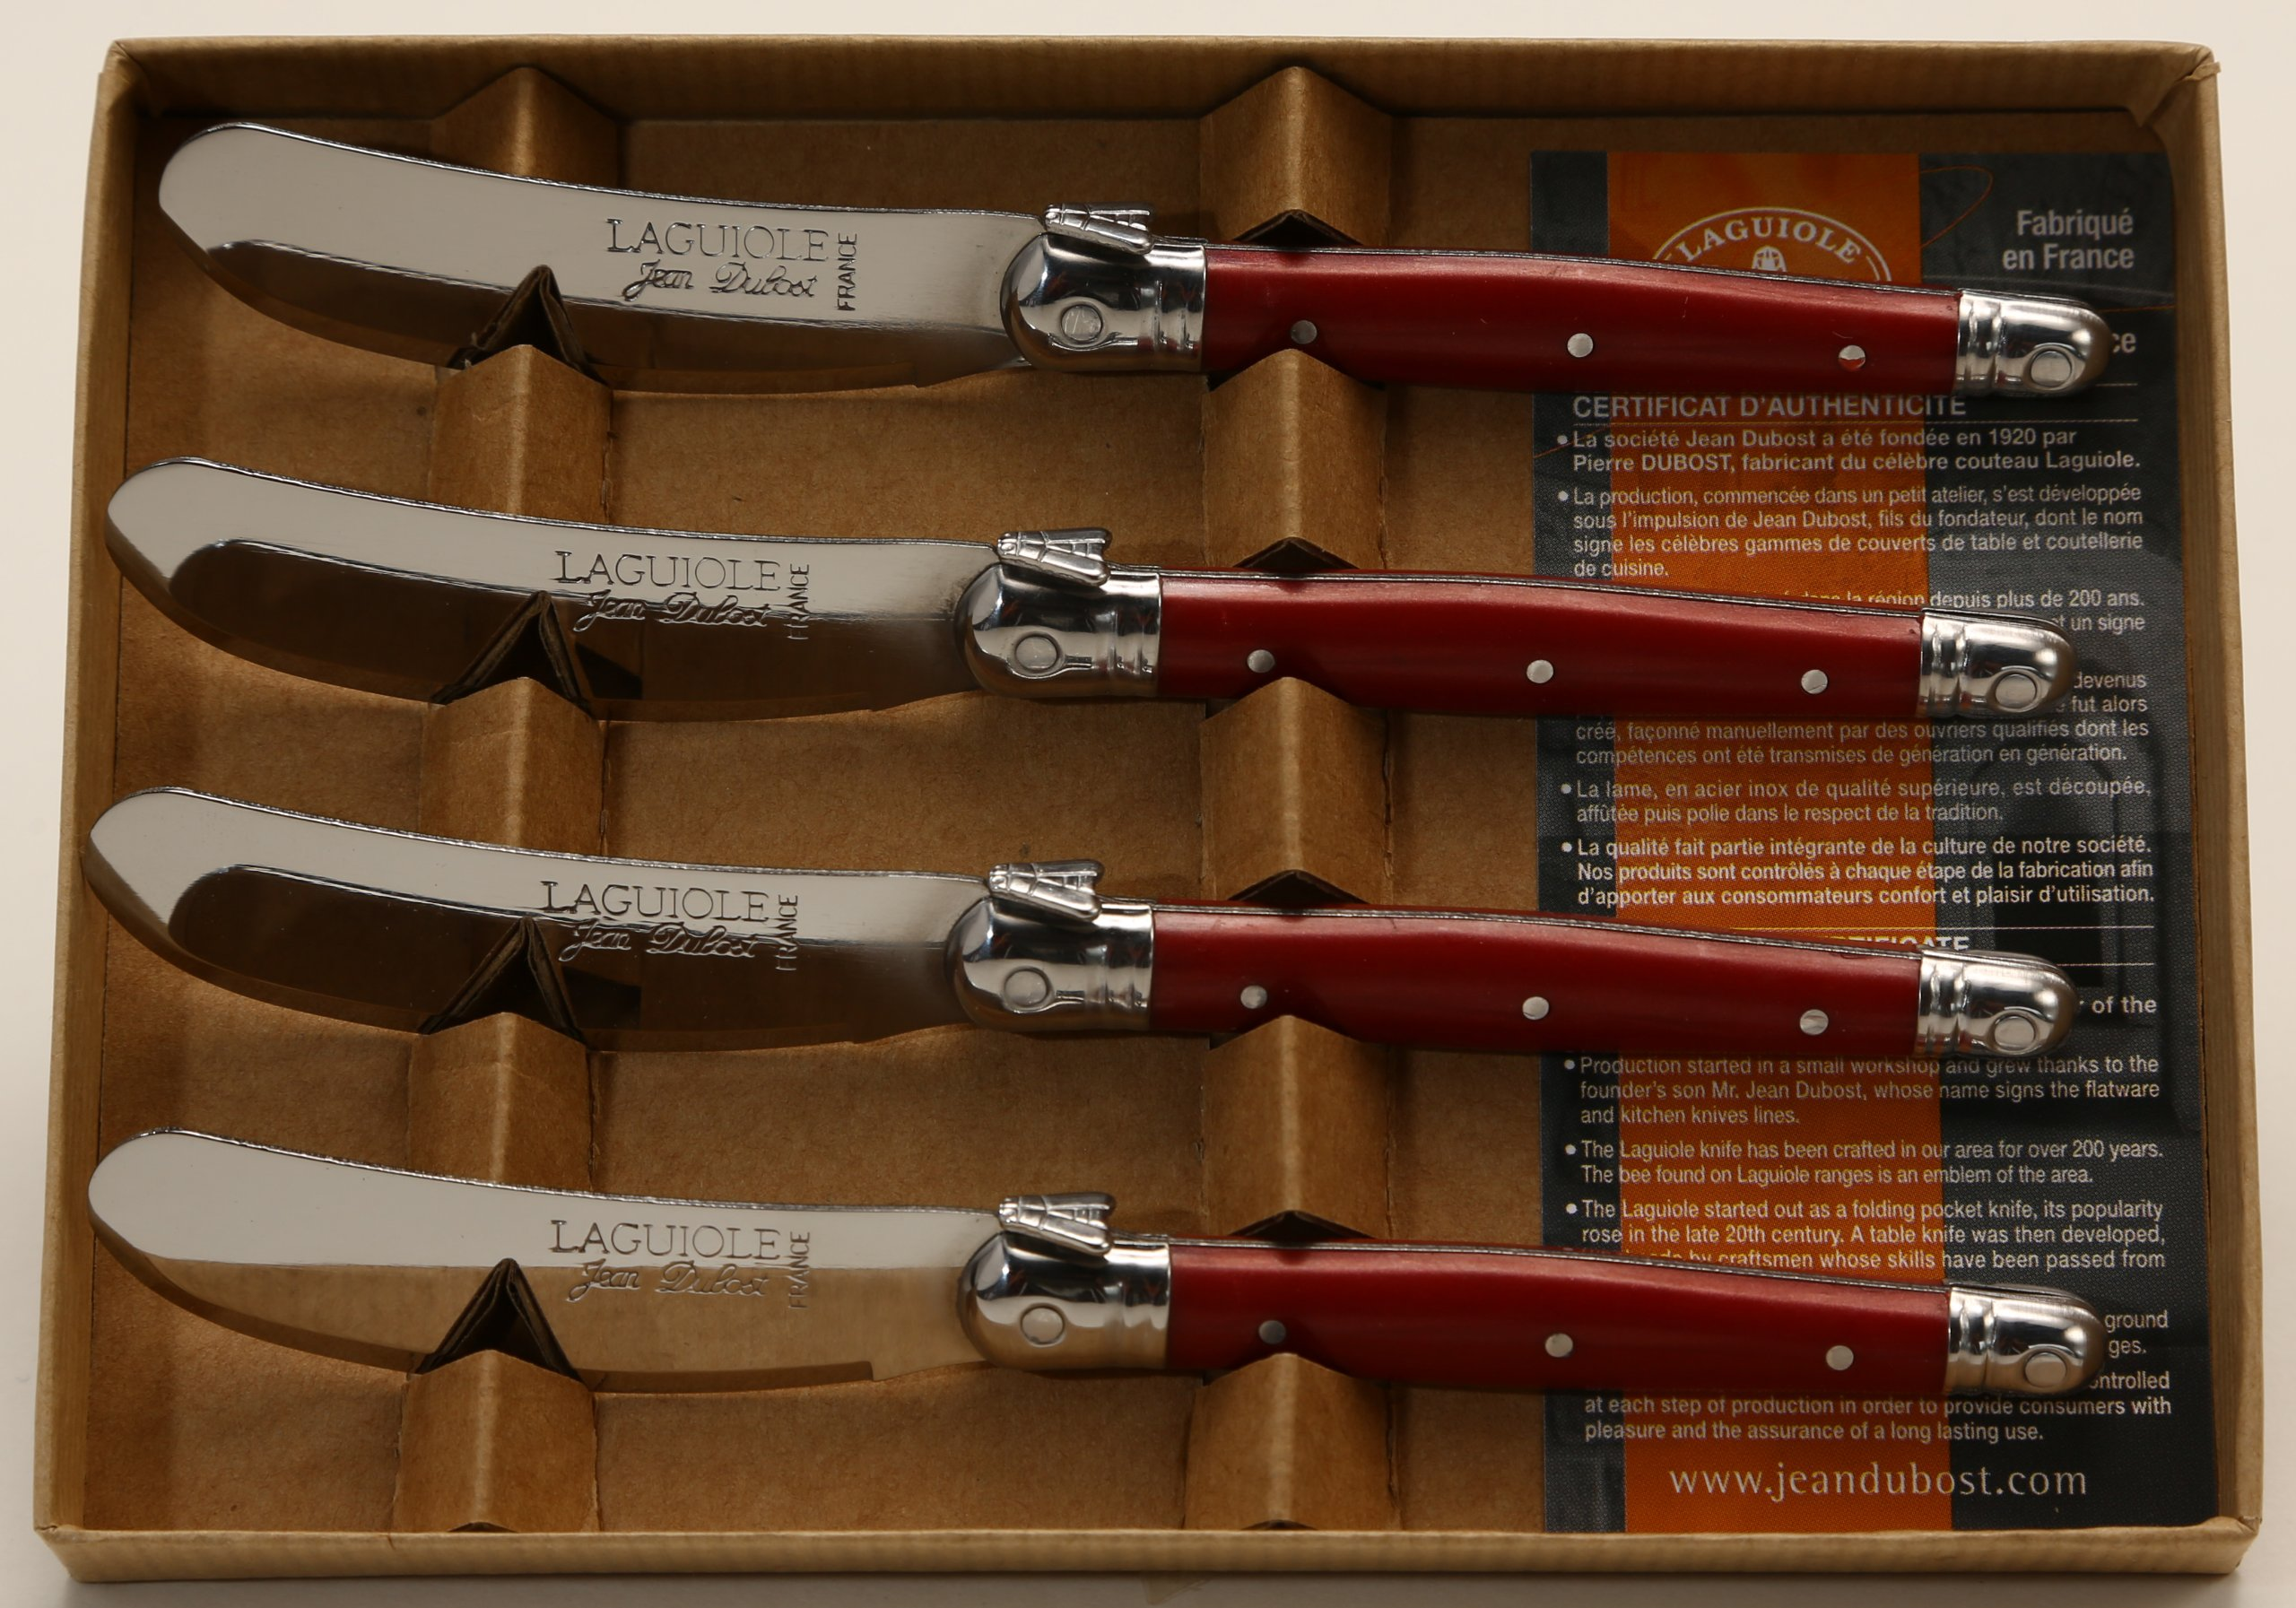 Jean Dubost Laguiole 4 Spreaders in Craft Box, Red by Jean Dubost Laguiole